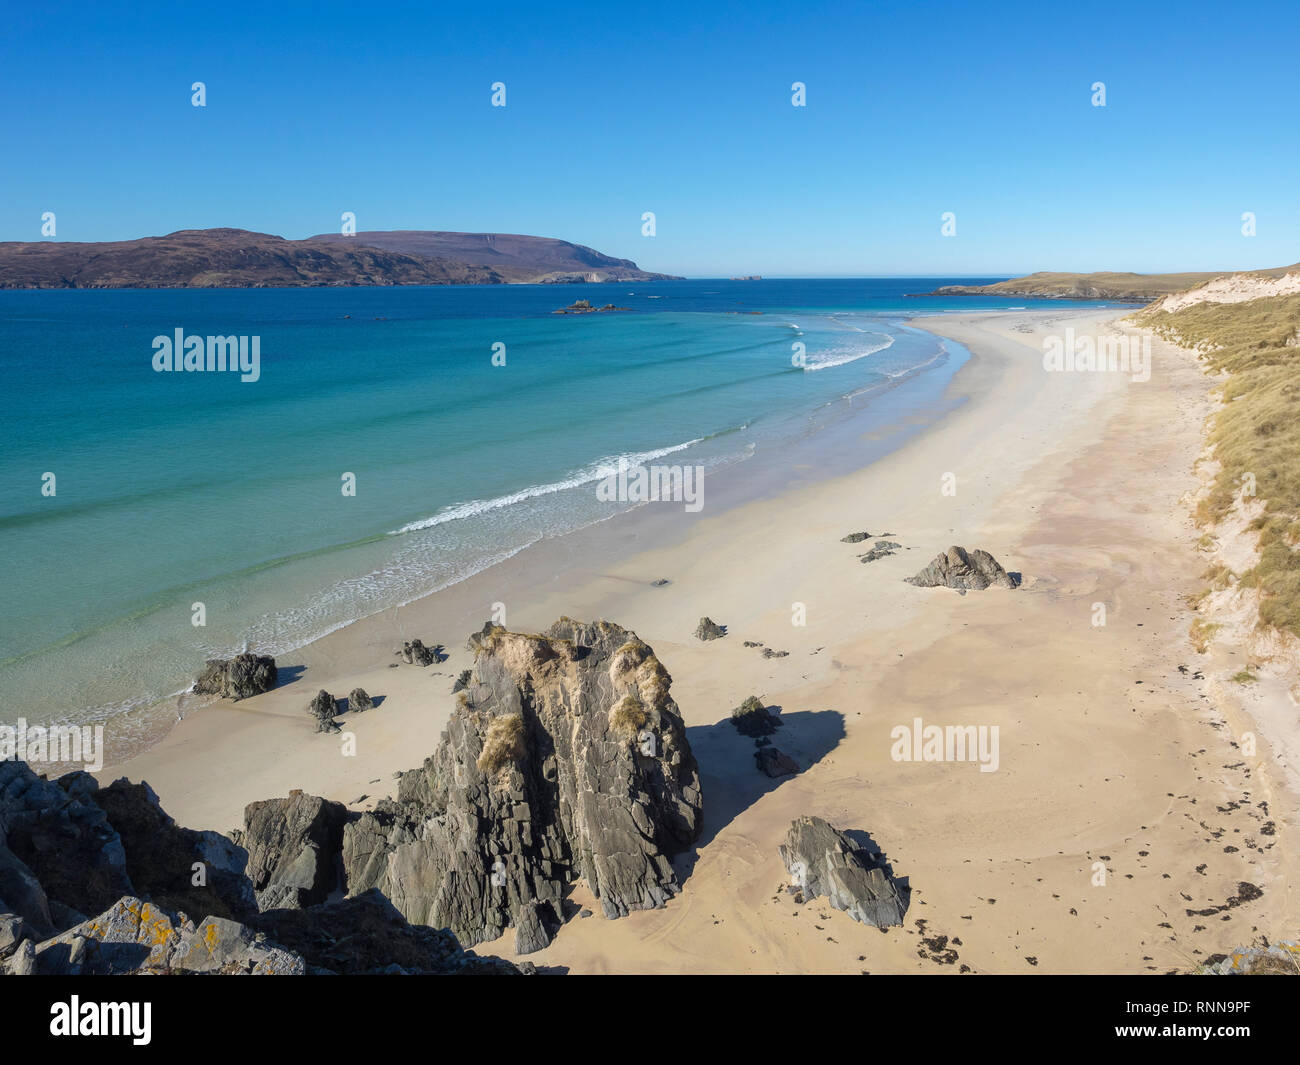 The beach and dunes at An Fharaid, Balnakeil Bay near Durness, Sutherland, Scotland - Stock Image